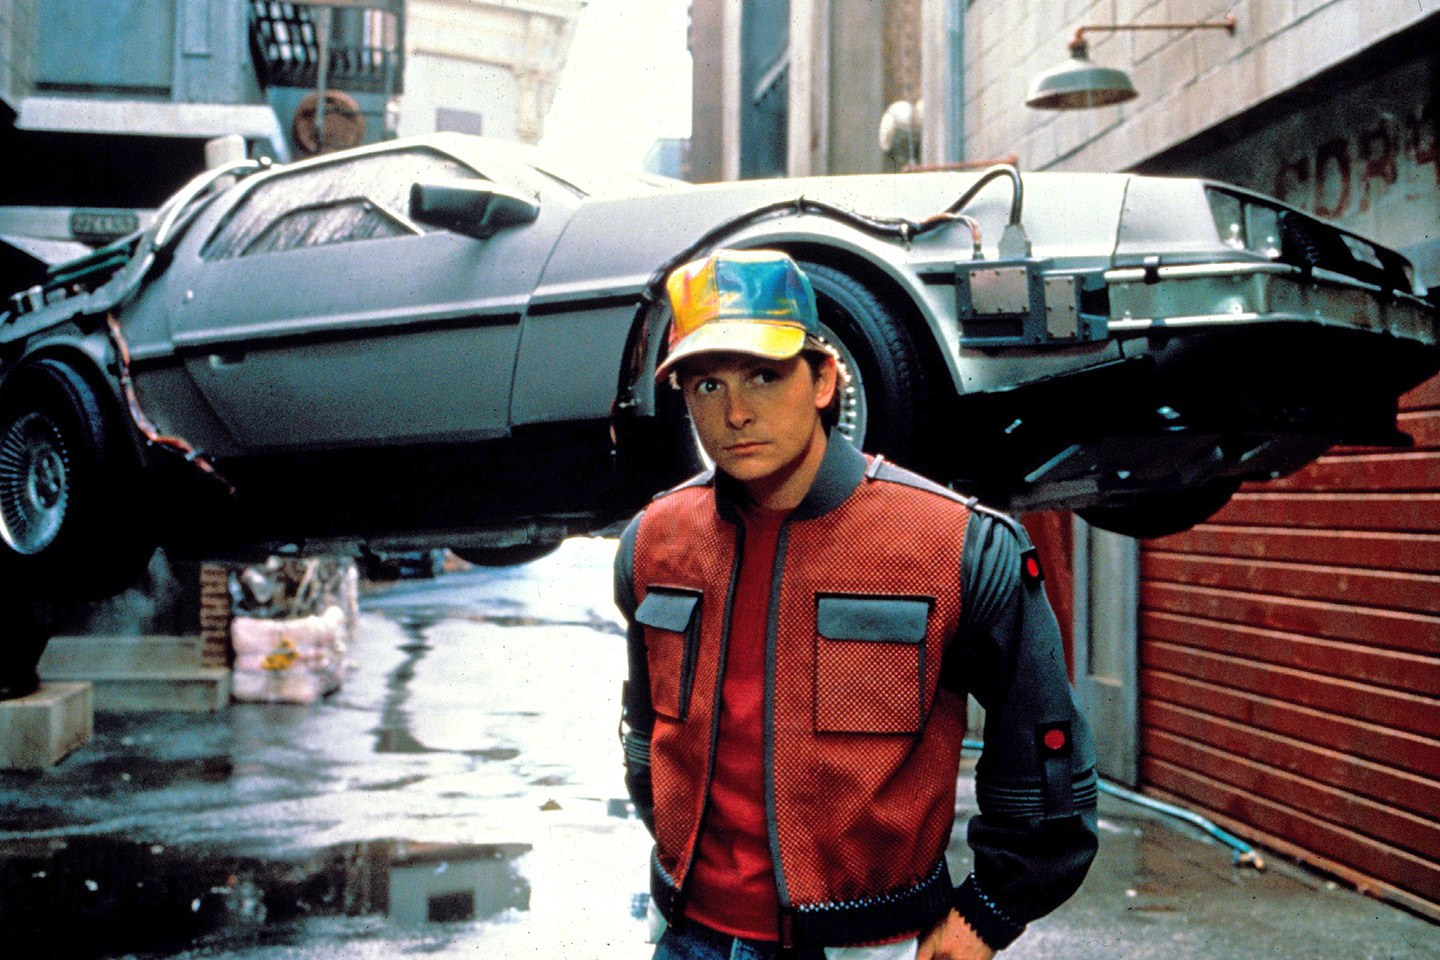 Marty McFly (Michael J. Fox) with flying DeLorean visits the future in Back to the Future Part II (1989)